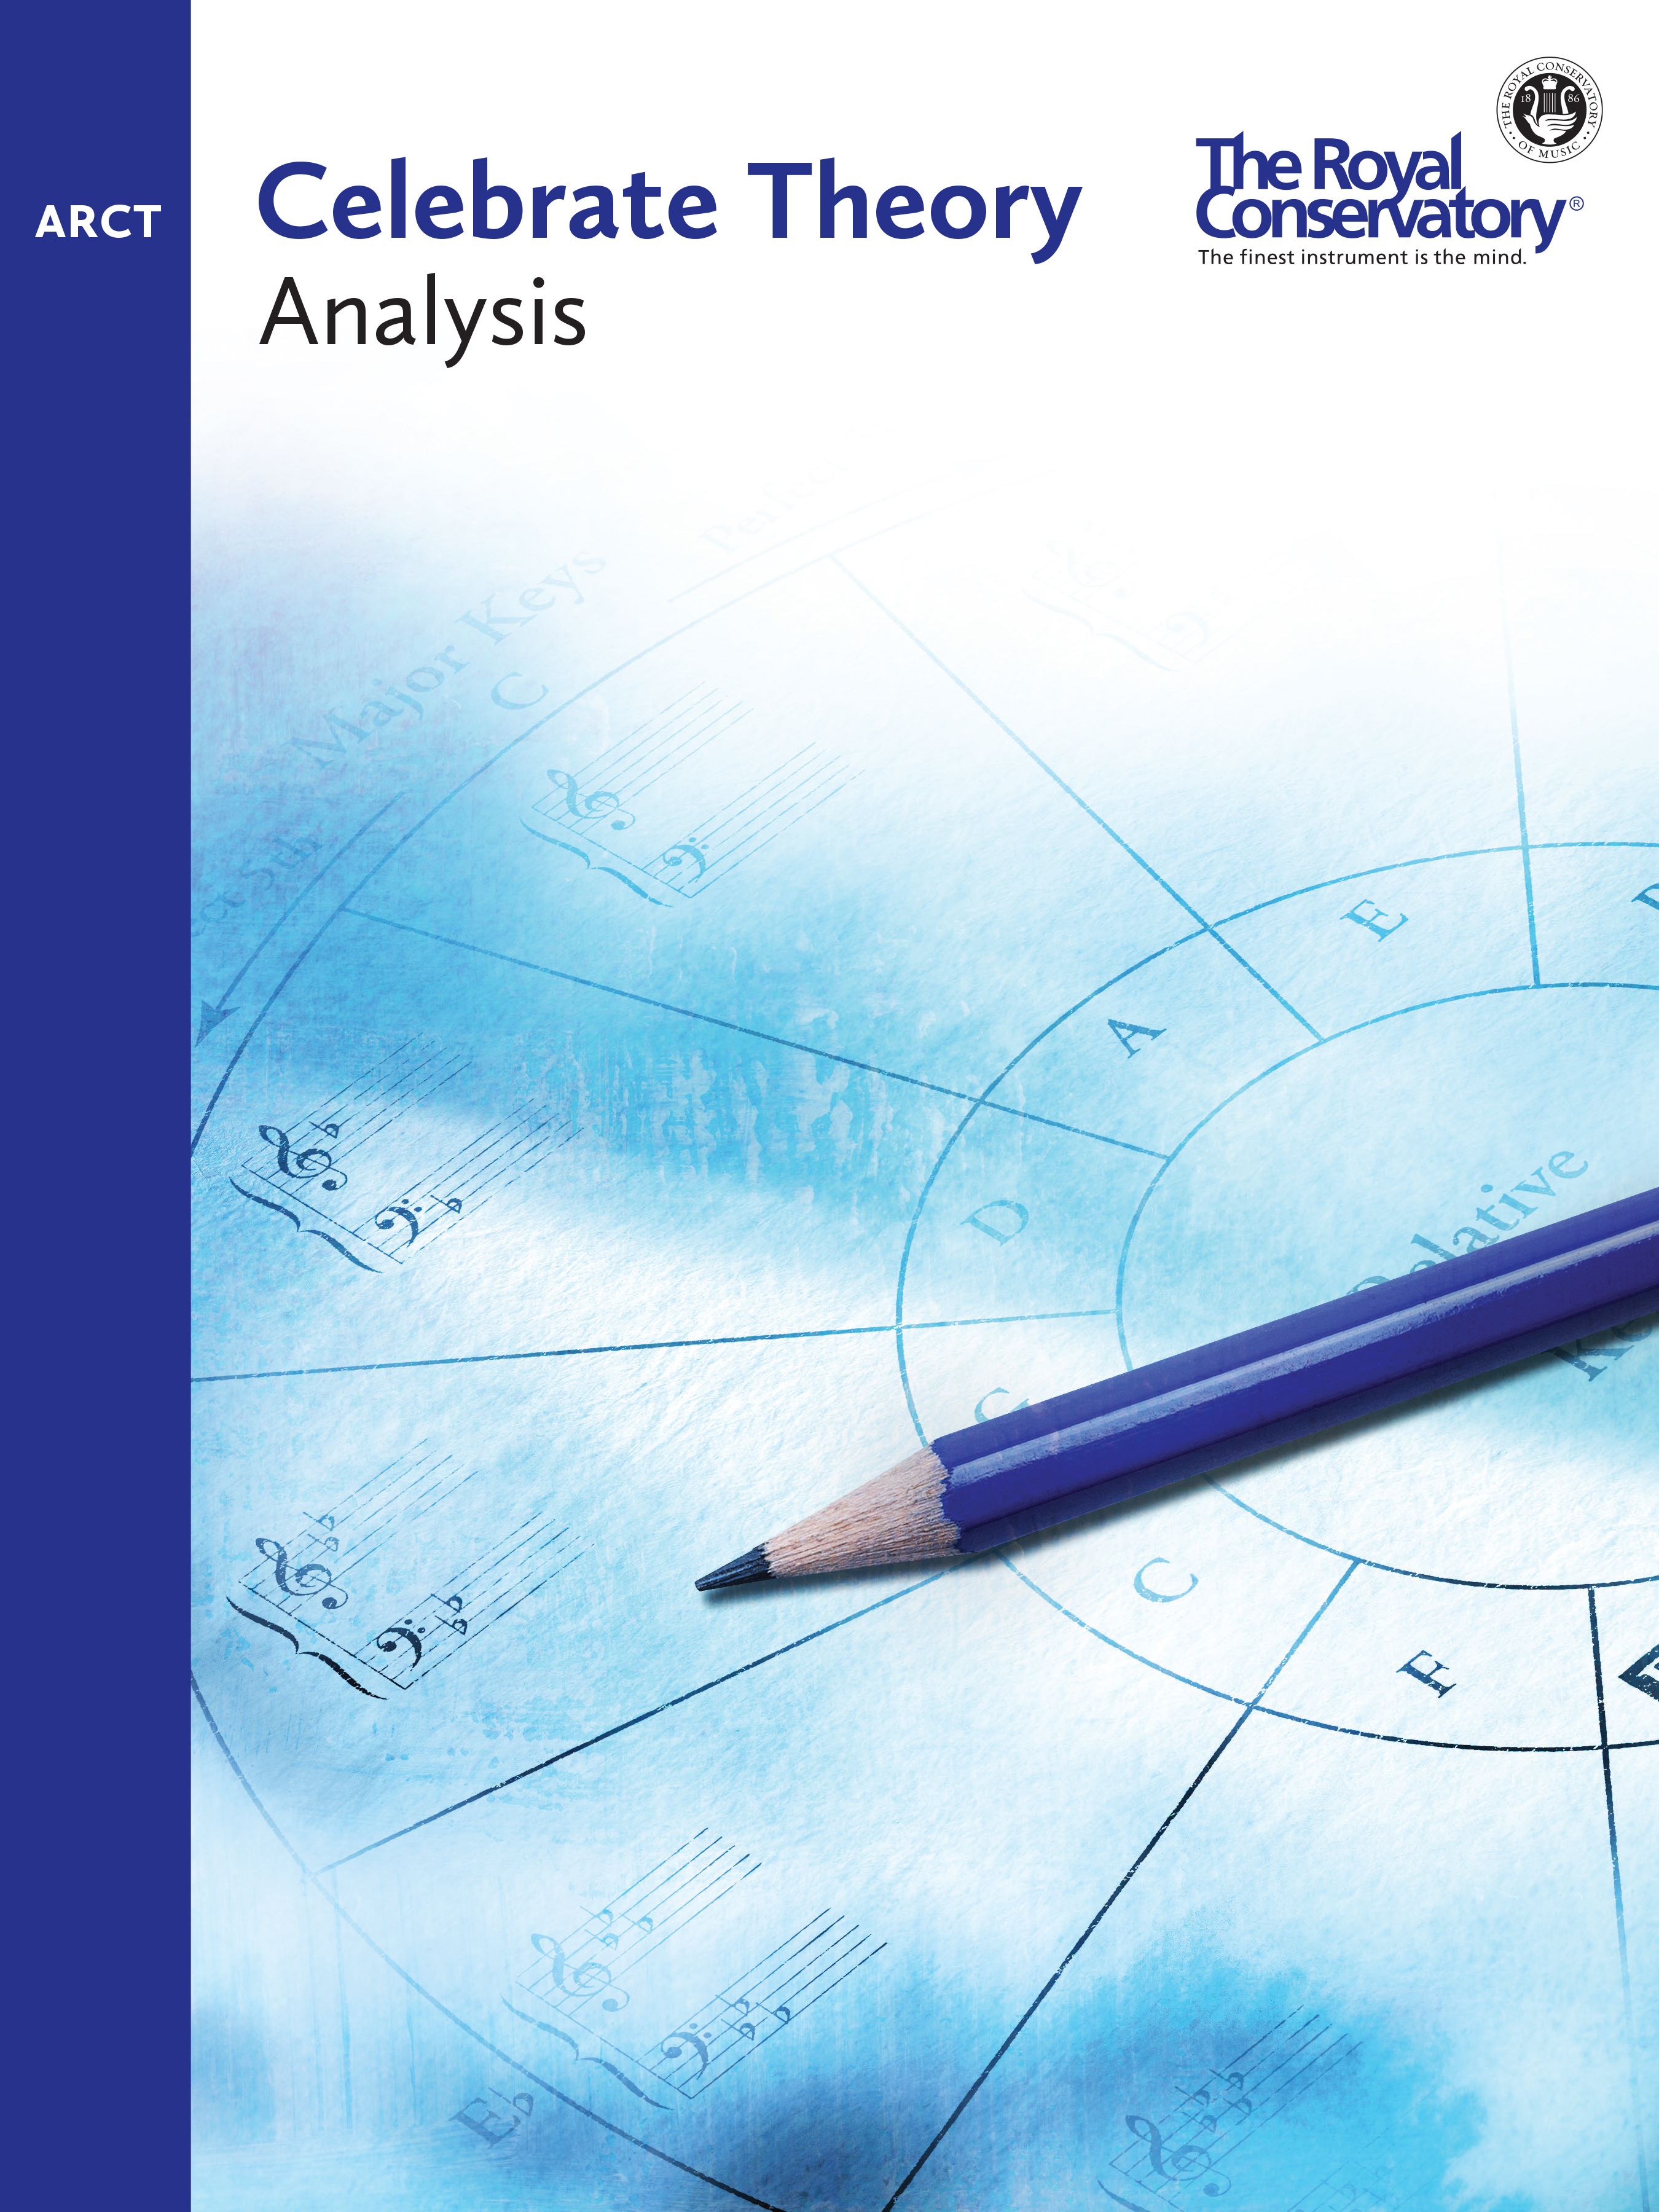 Celebrate Theory ARCT Analysis cover- RCM Theory 2016